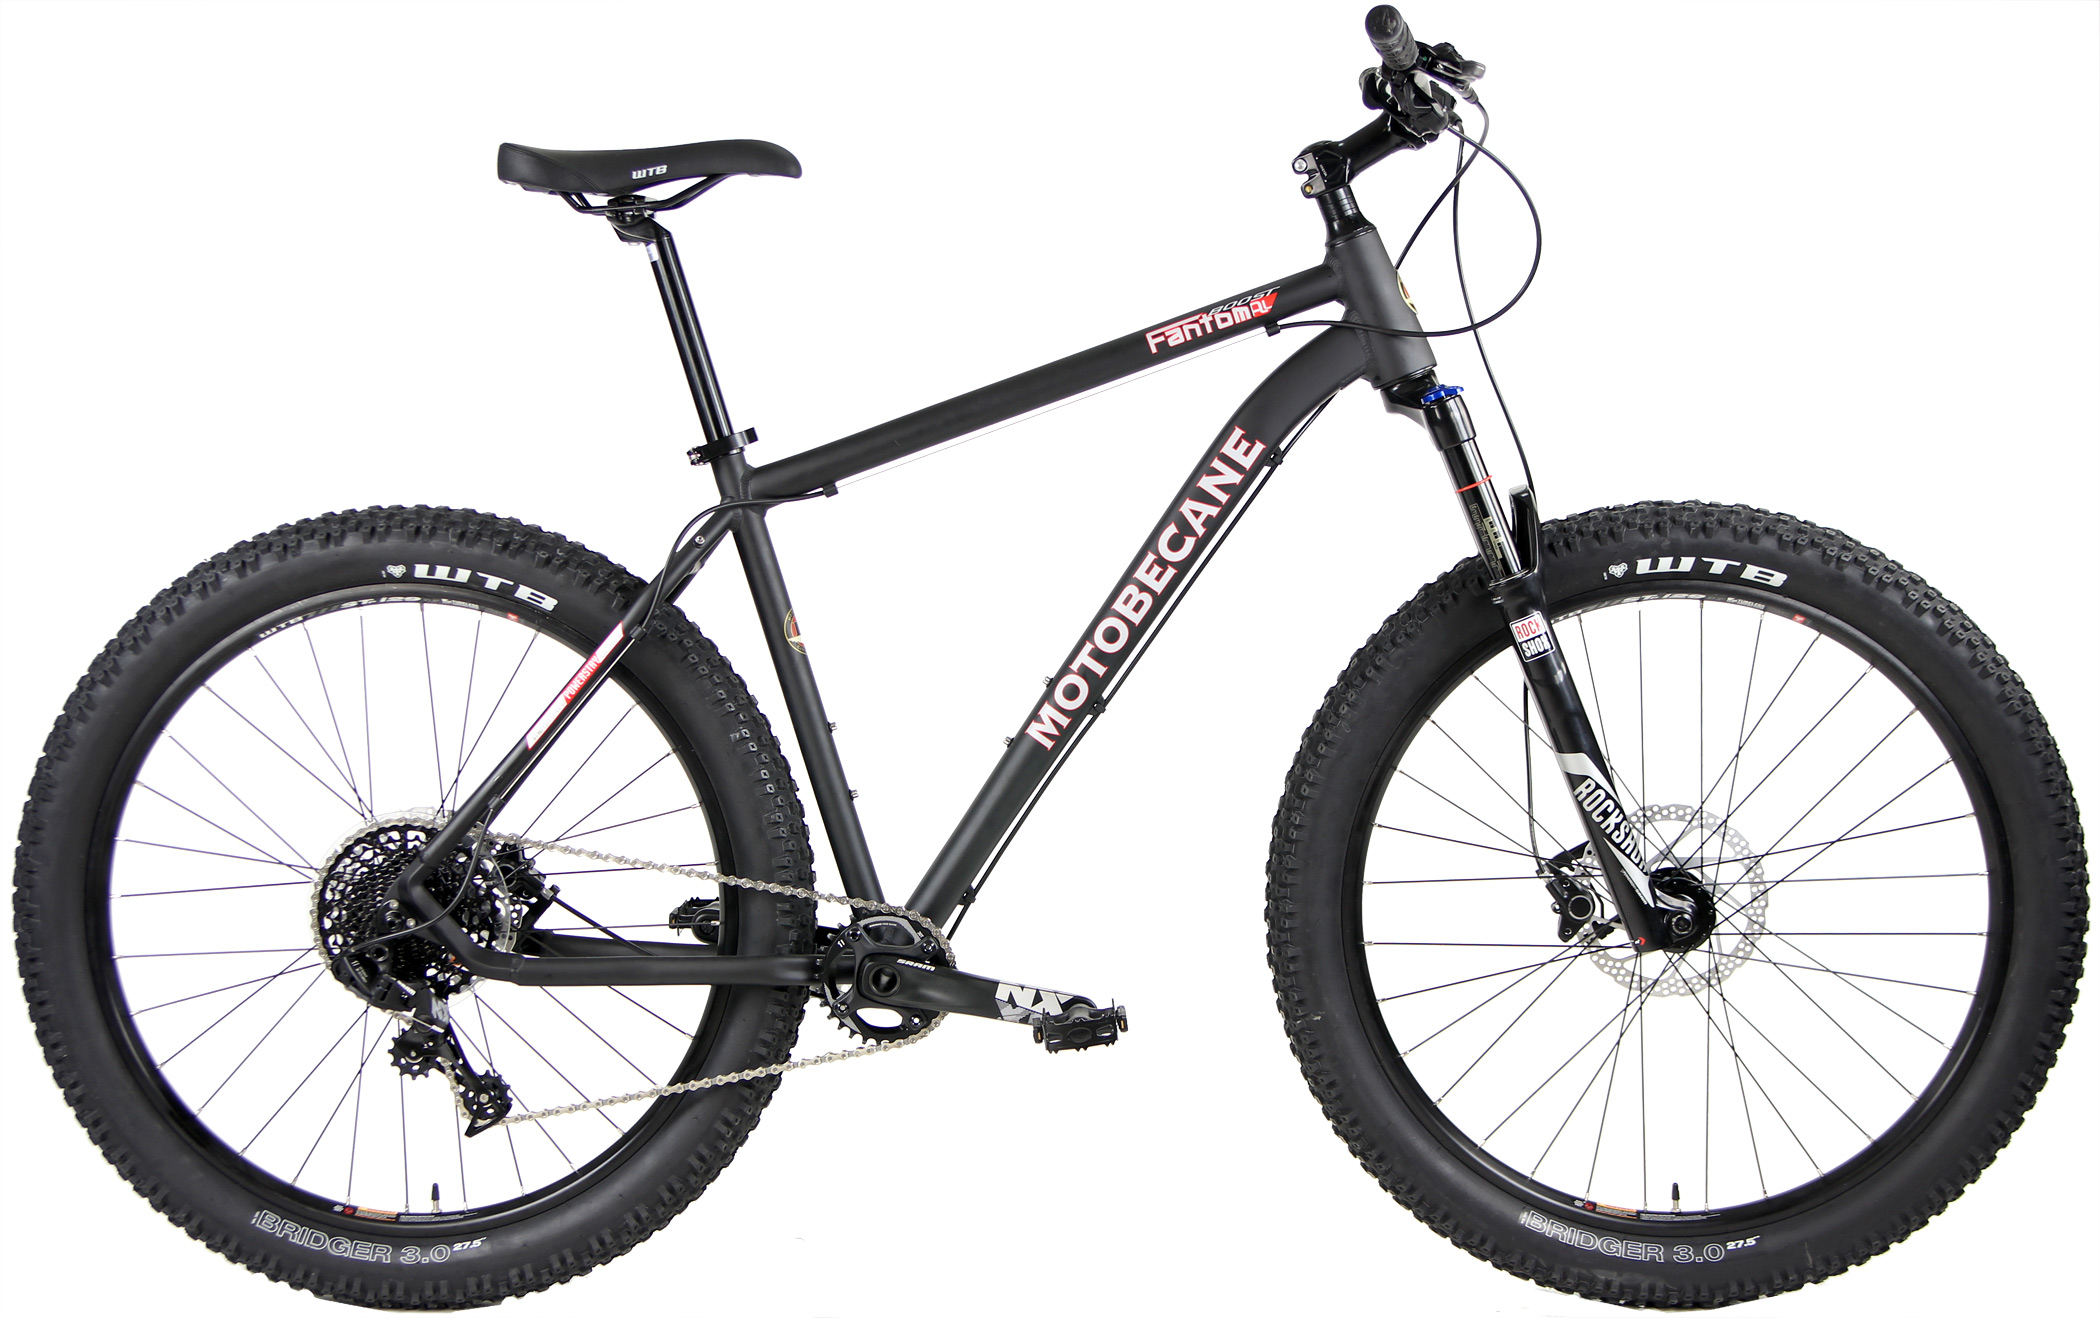 Bikes 2018 Fantom Boost Elite 27.5 inch SRAM NX 1x11 Shimano Disc Brake Mountain Bike Image